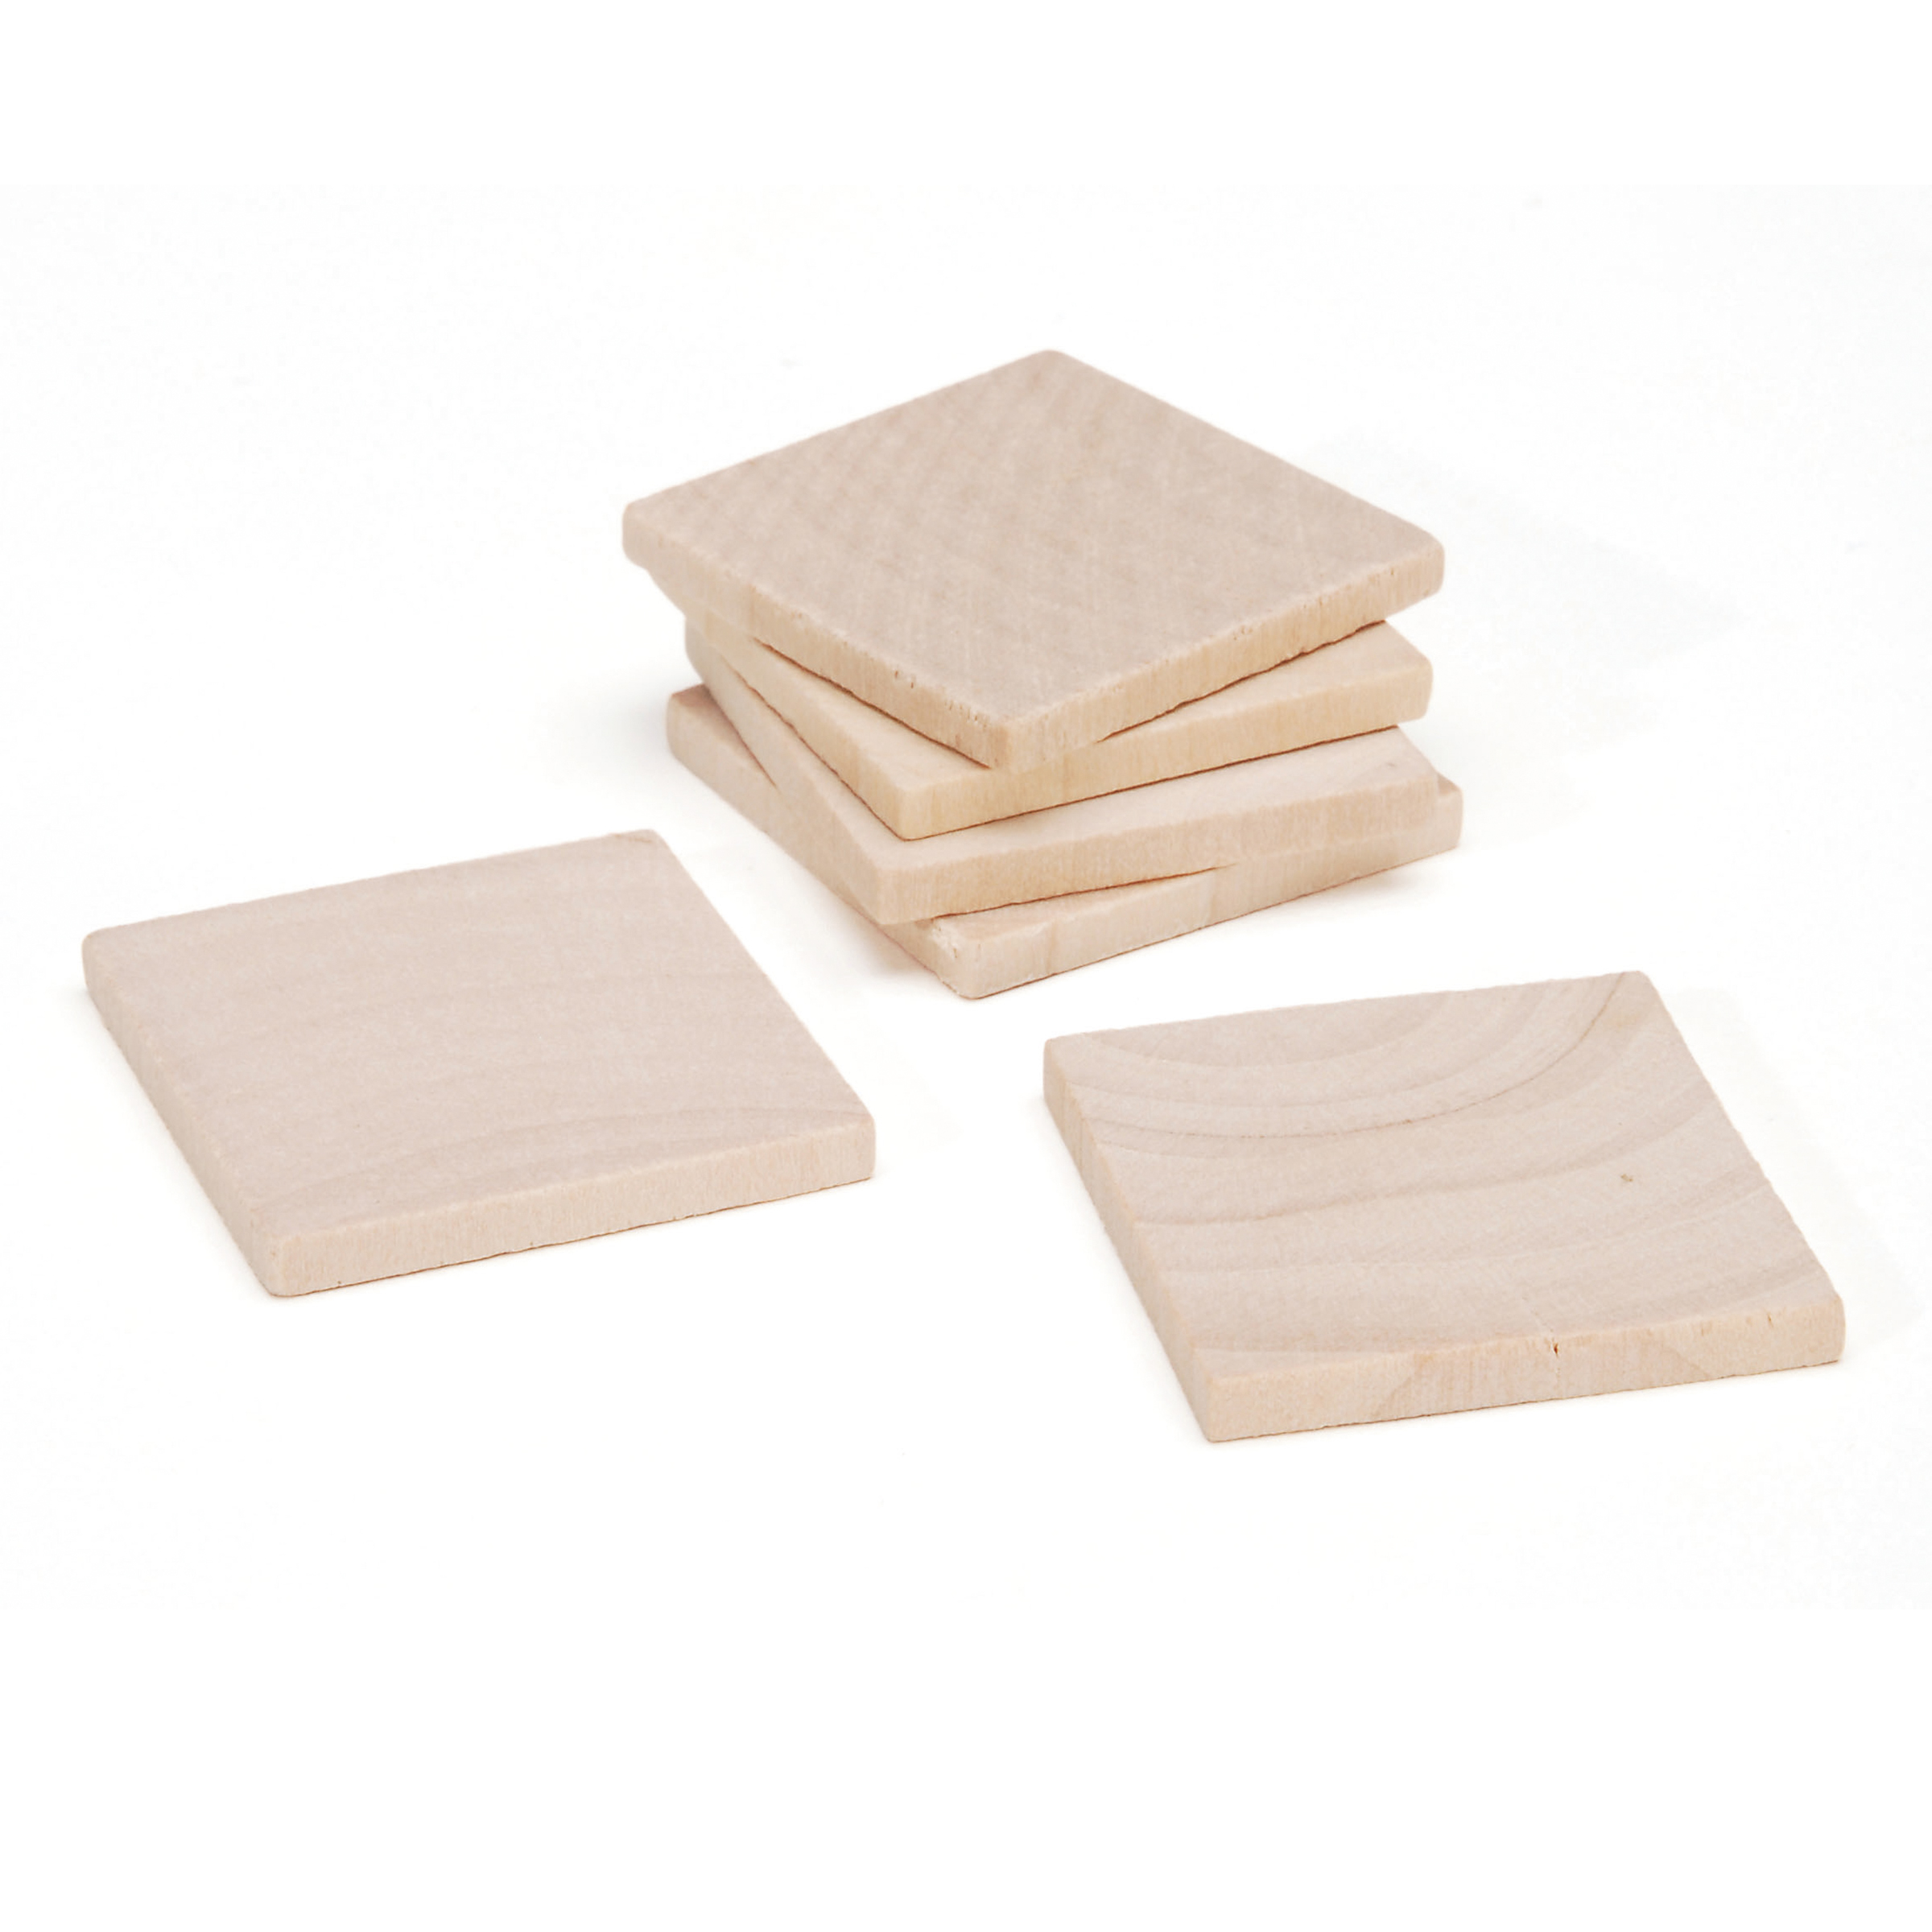 Unfinished Wood Square 1-1/4 x 1/8 inch 6 pcs./pkg